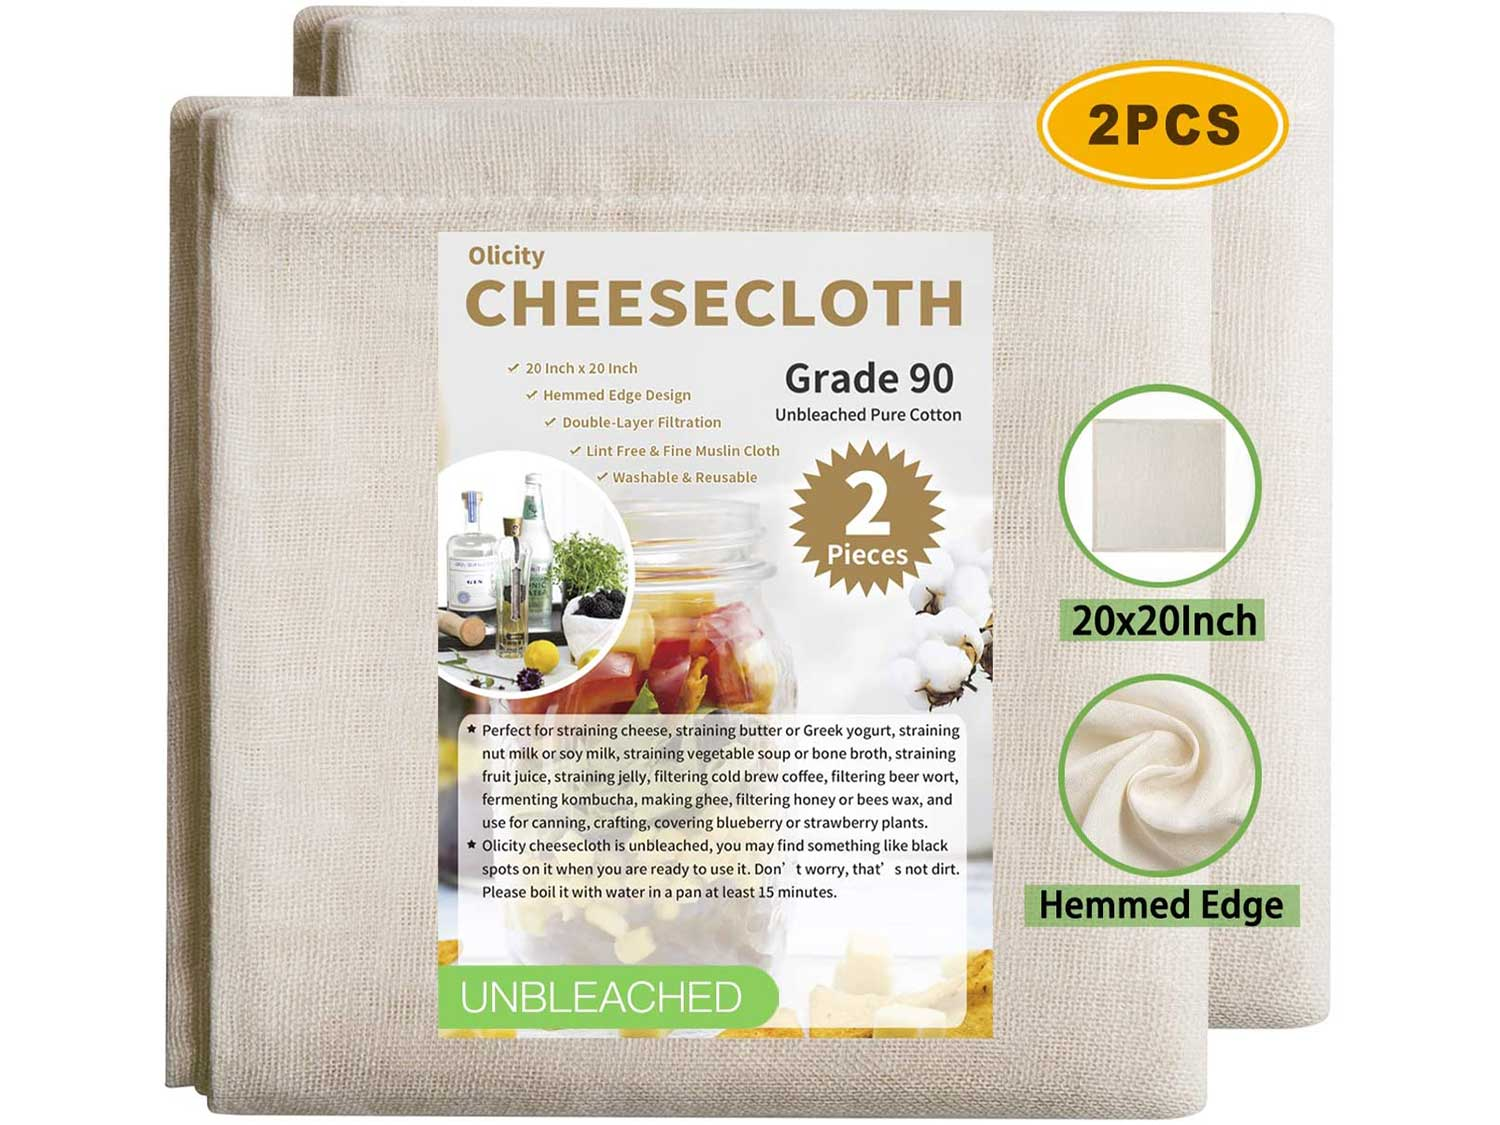 Olicity Cheesecloth, 20x20 Inch, Grade 90, 100% Unbleached Pure Cotton Muslin Cloth for Straining, Ultra Fine Reusable Hemmed Edge Cheese Cloth Filter Strainer for Cooking, Nut Milk Strain (2 Pieces)